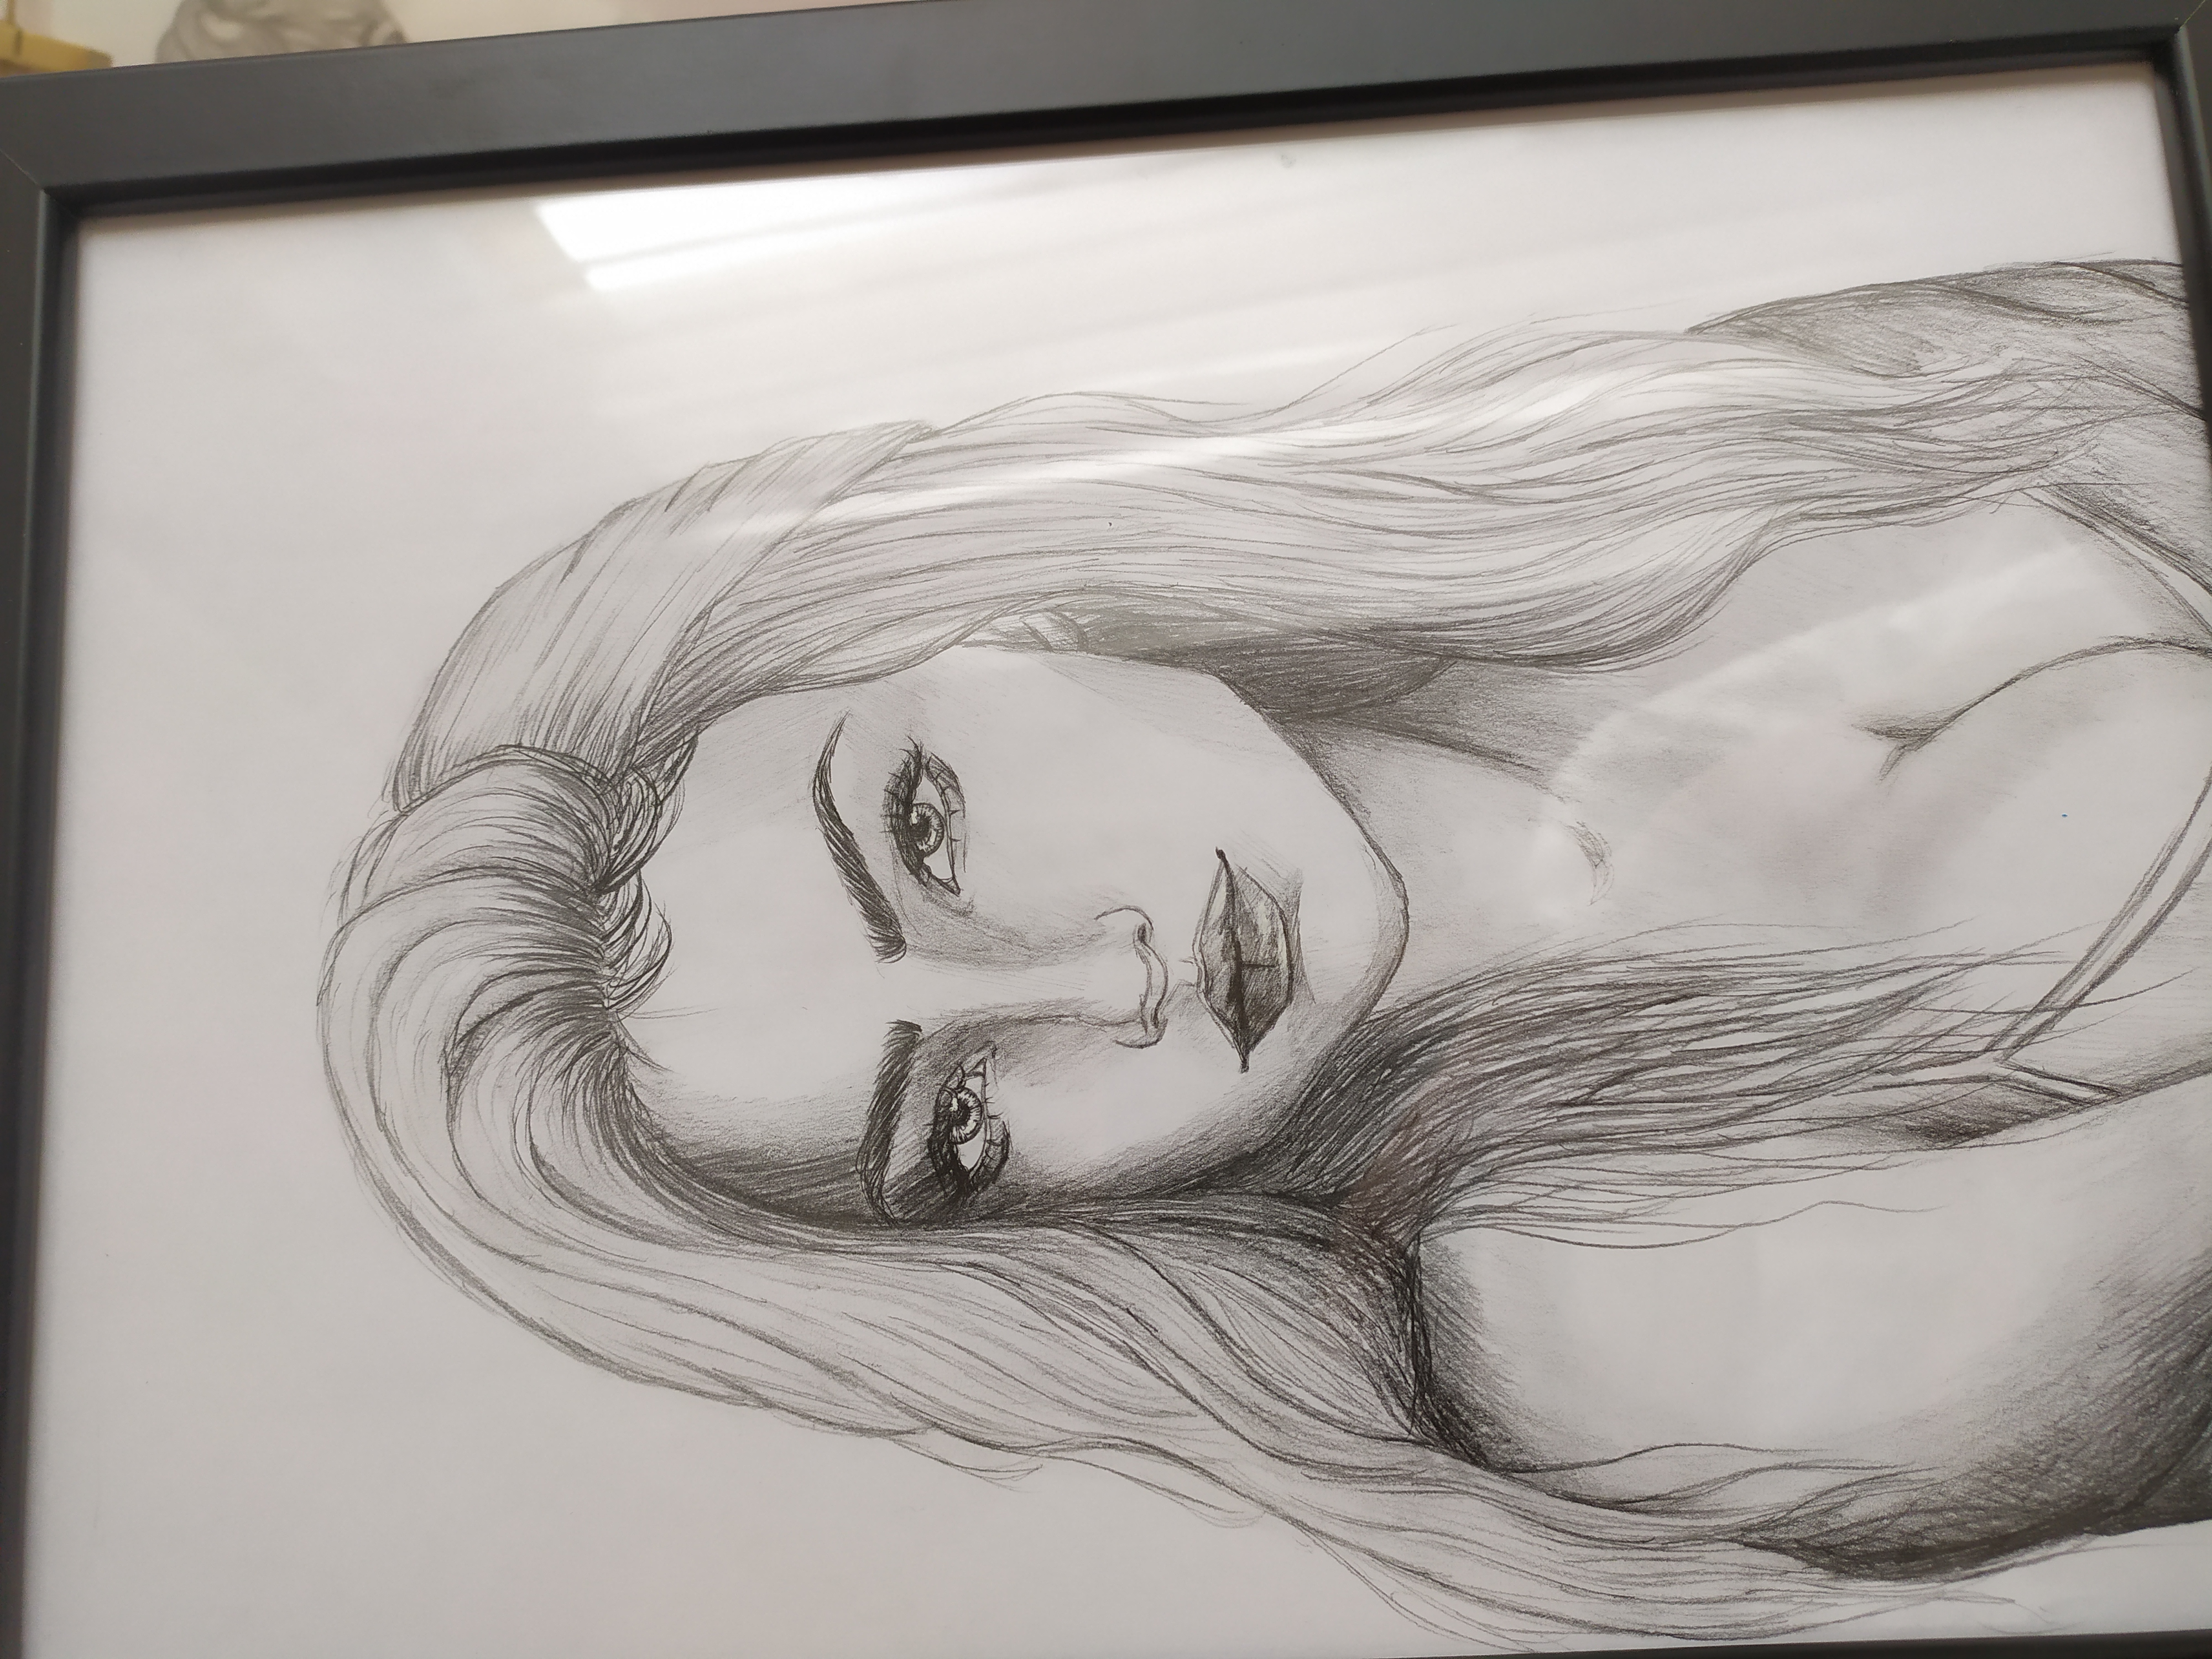 I will do professional sketch and illustration